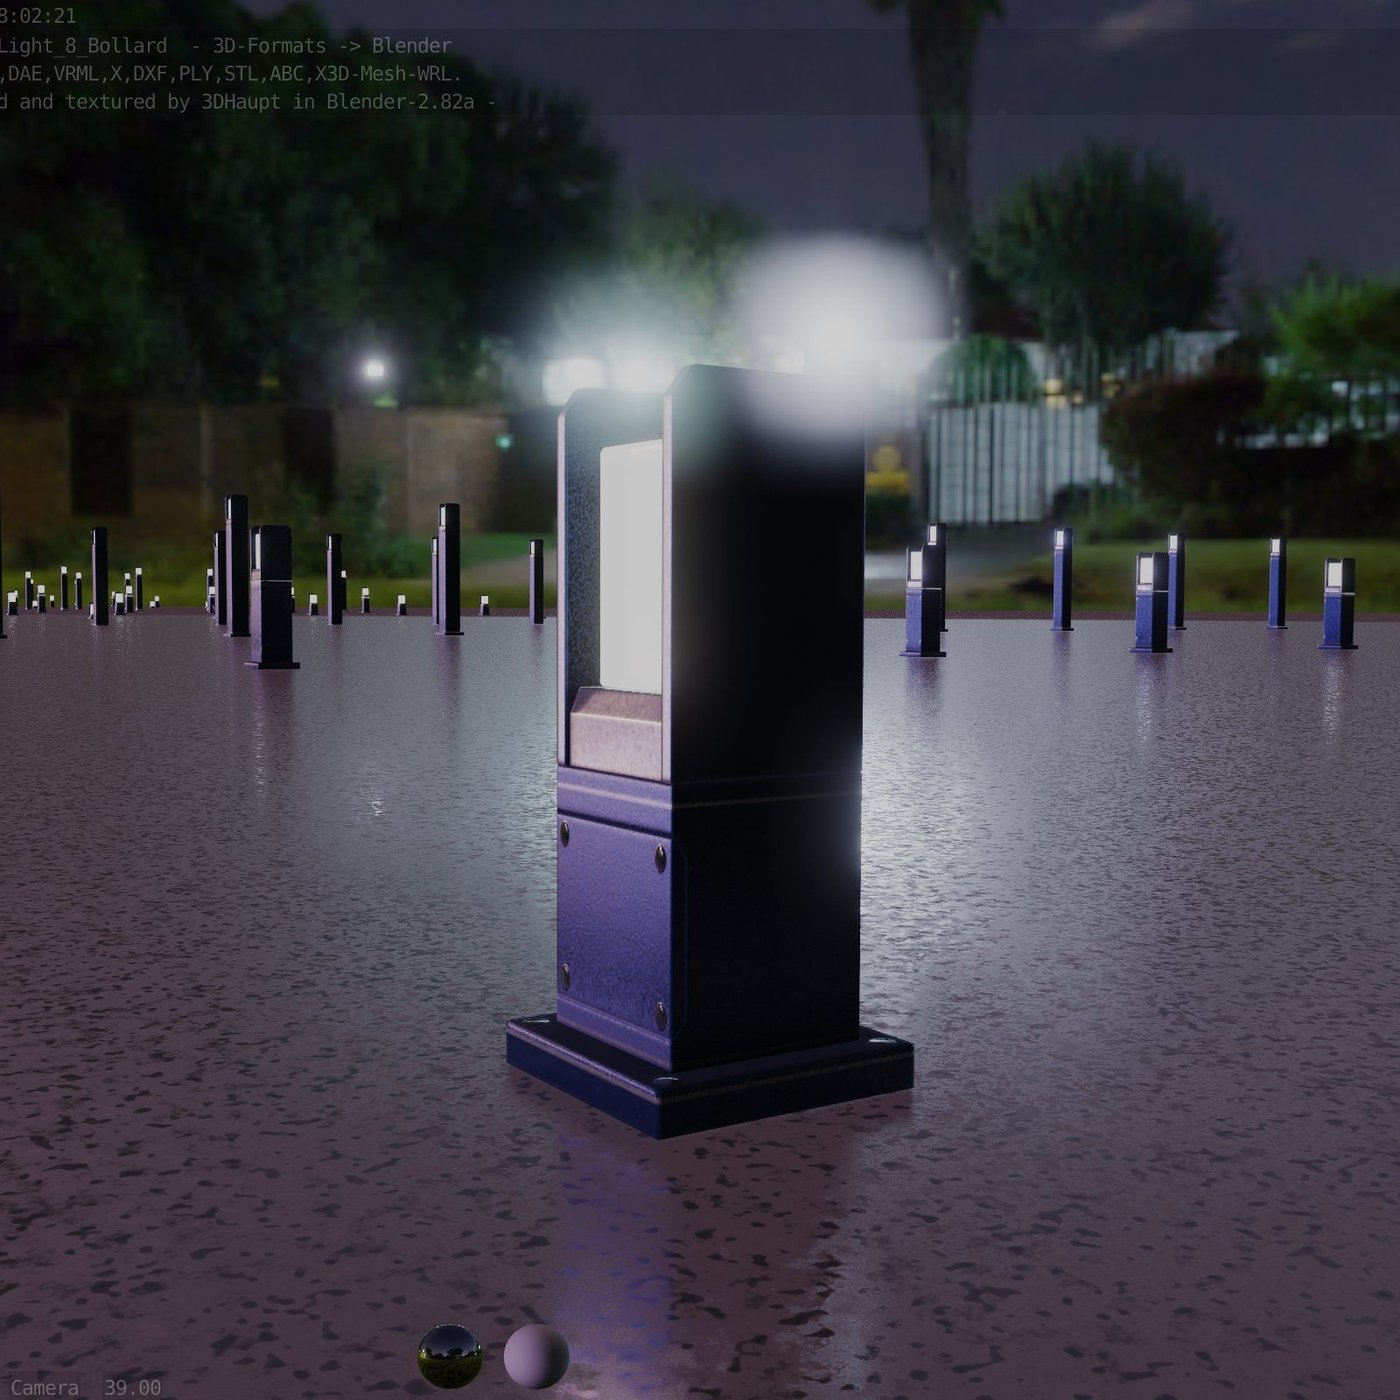 Street Light 8 Bollard Futuristic Blue Version